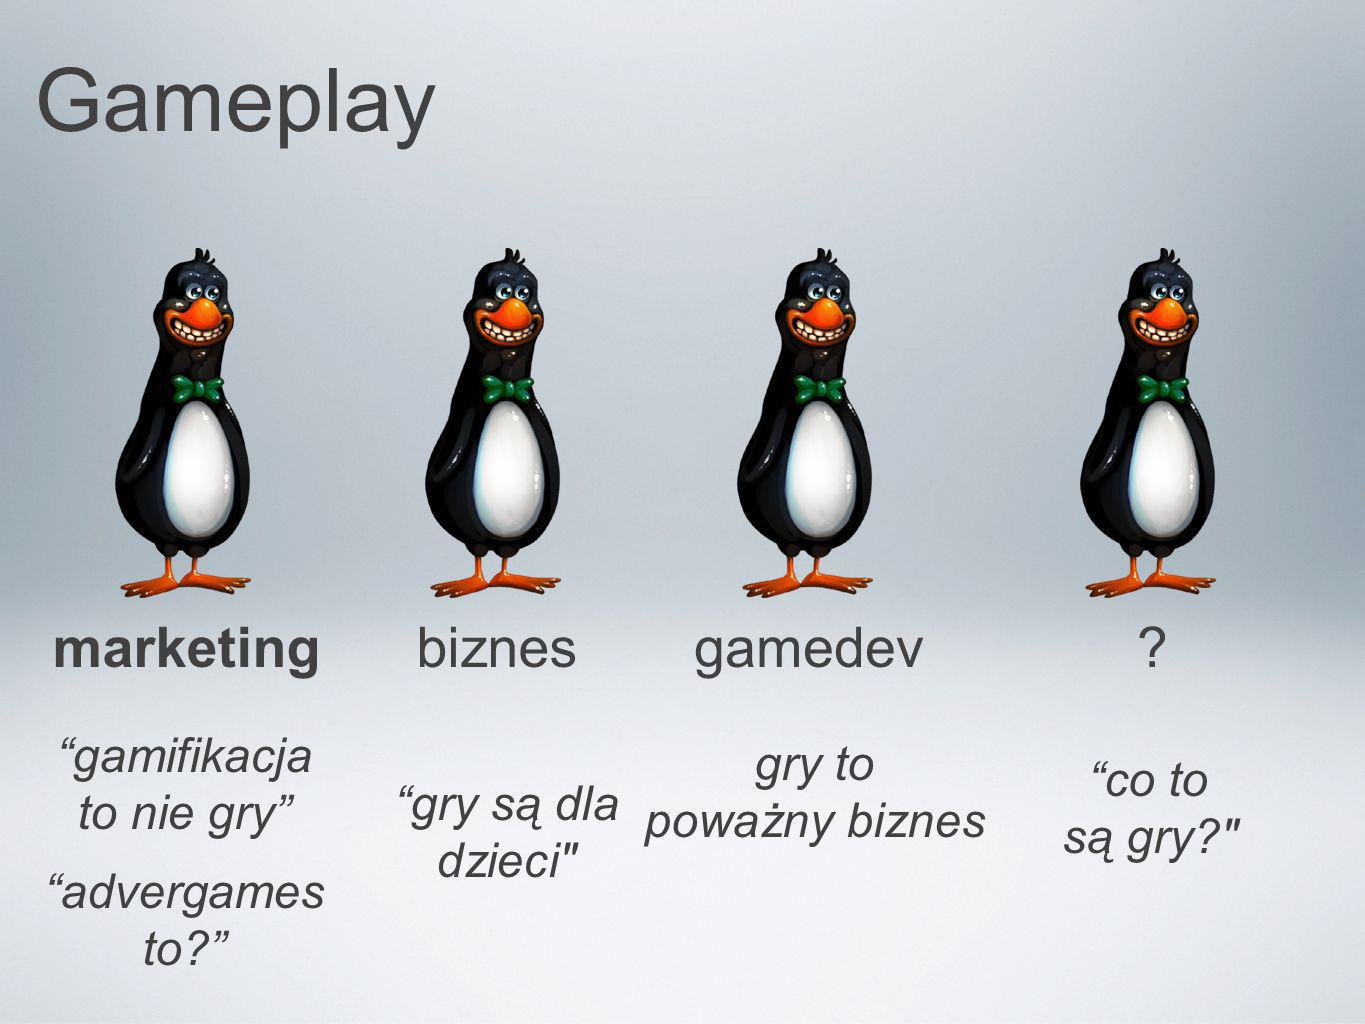 Gameplay marketing biznes gamedev gamifikacja gry to co to